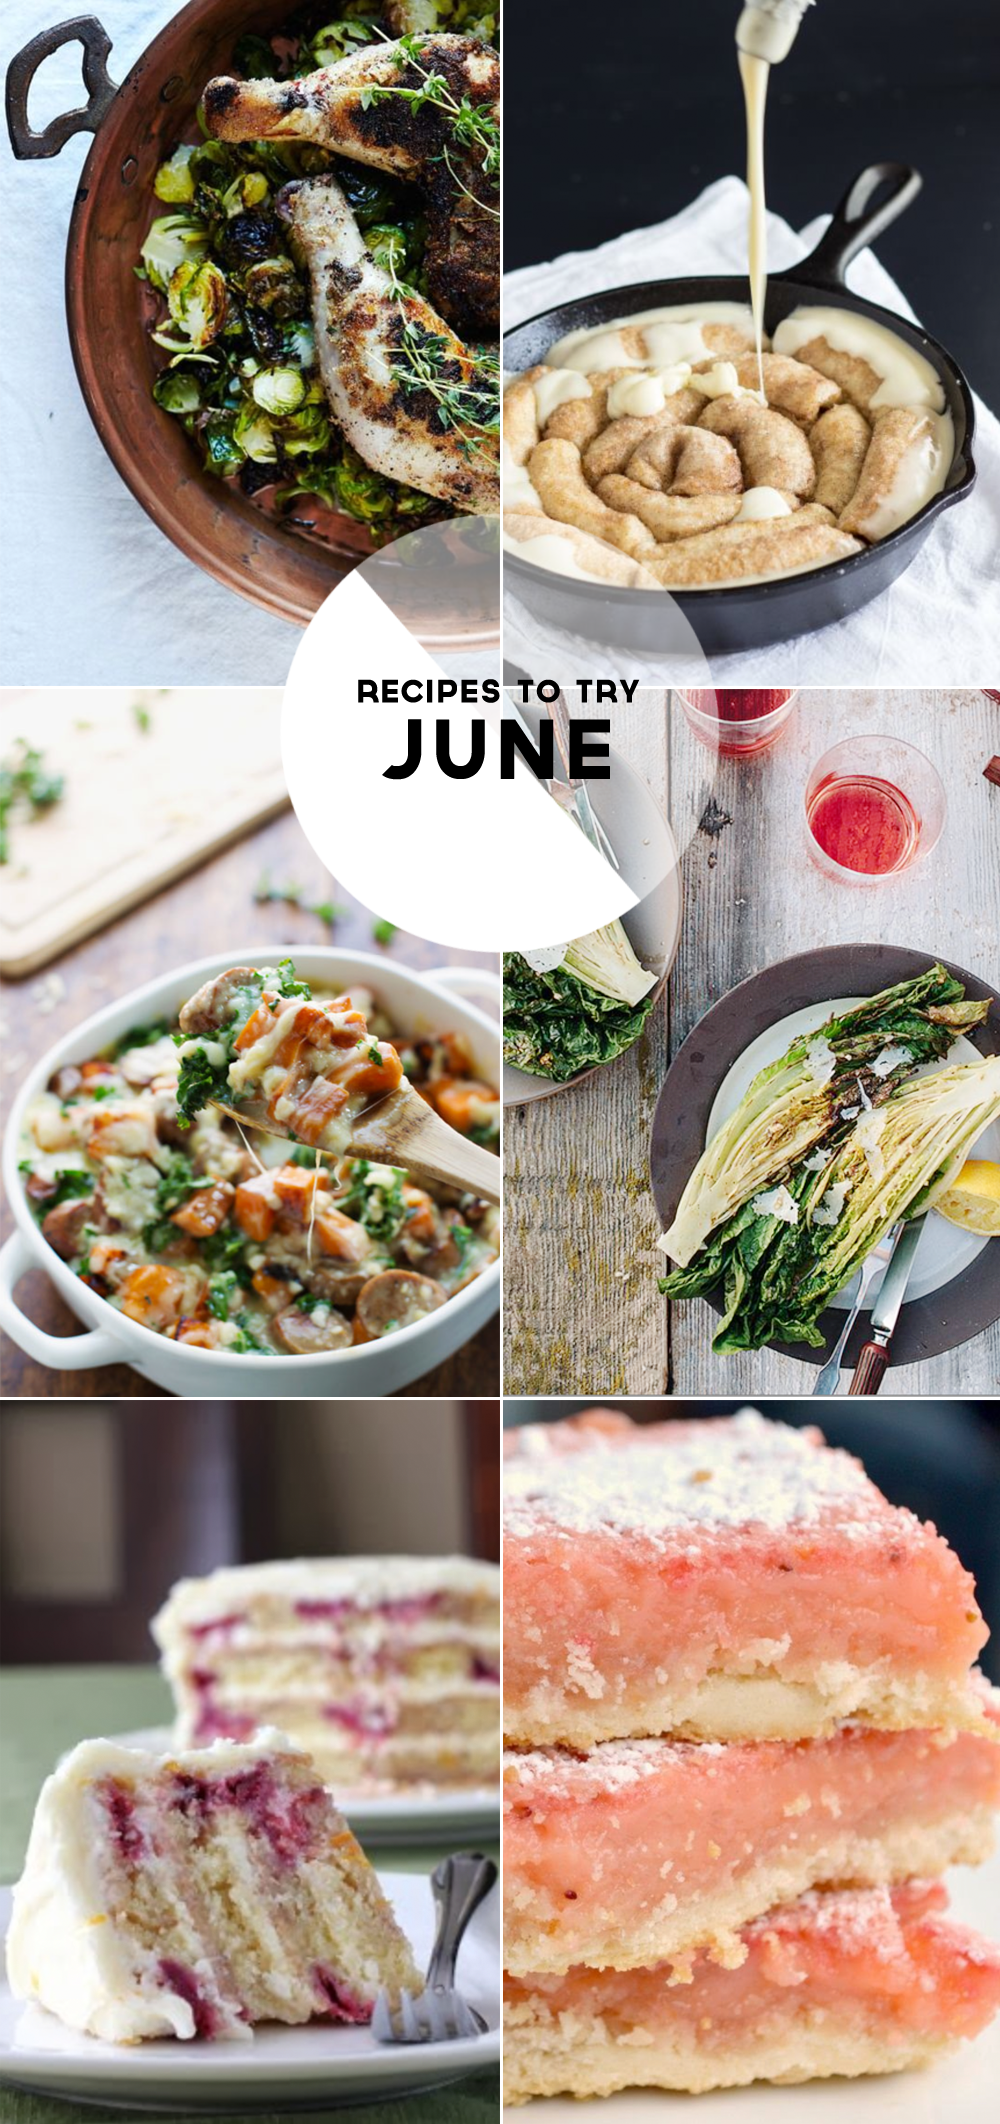 Good Eats | Recipes to Try: June | PepperDesignBlog.com